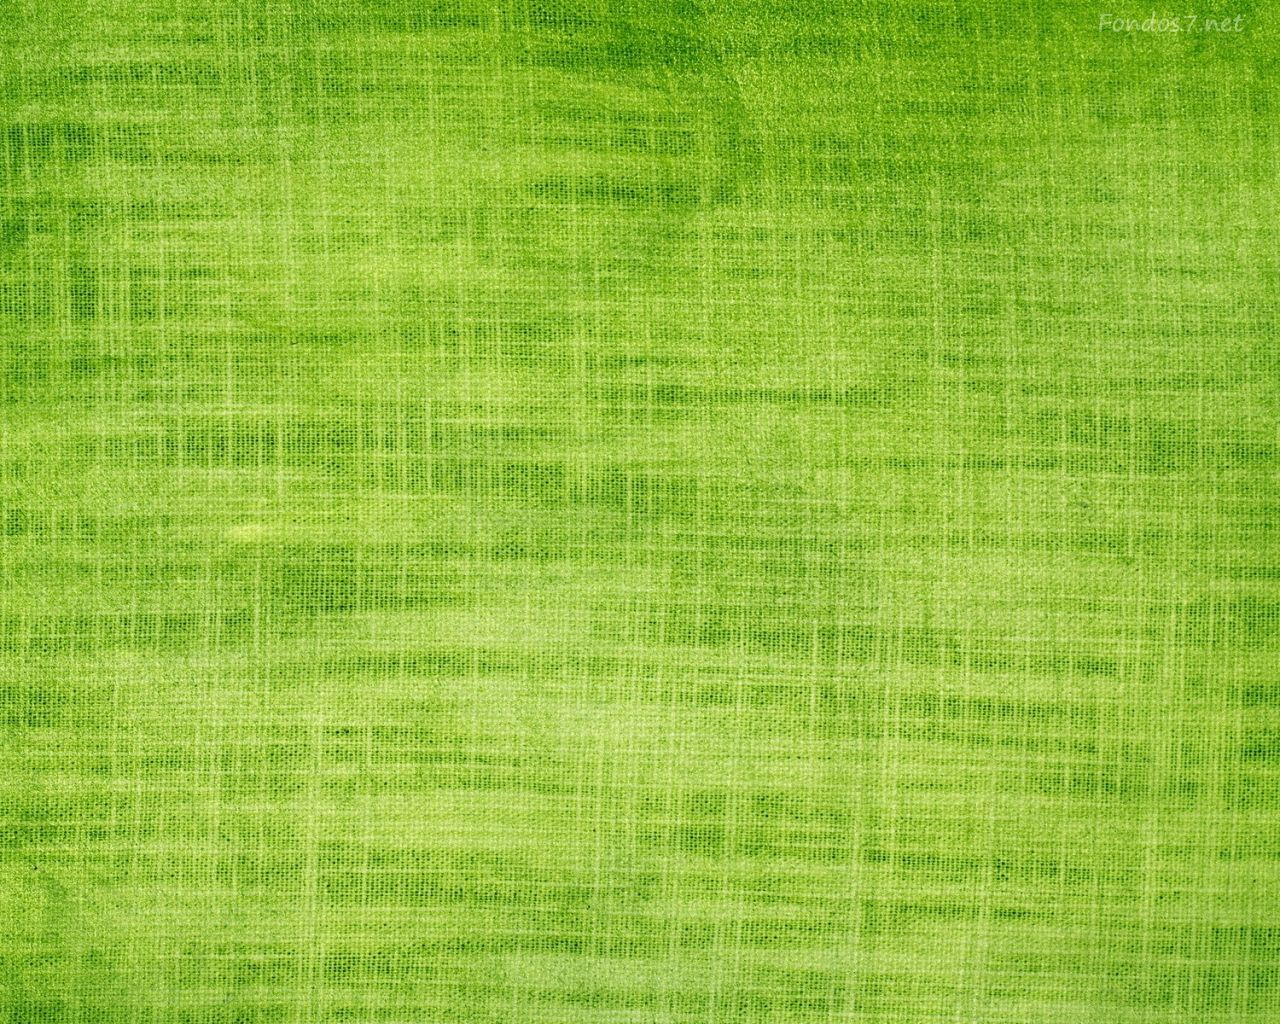 download textura color verde 1280x1024 wallpaper  10093